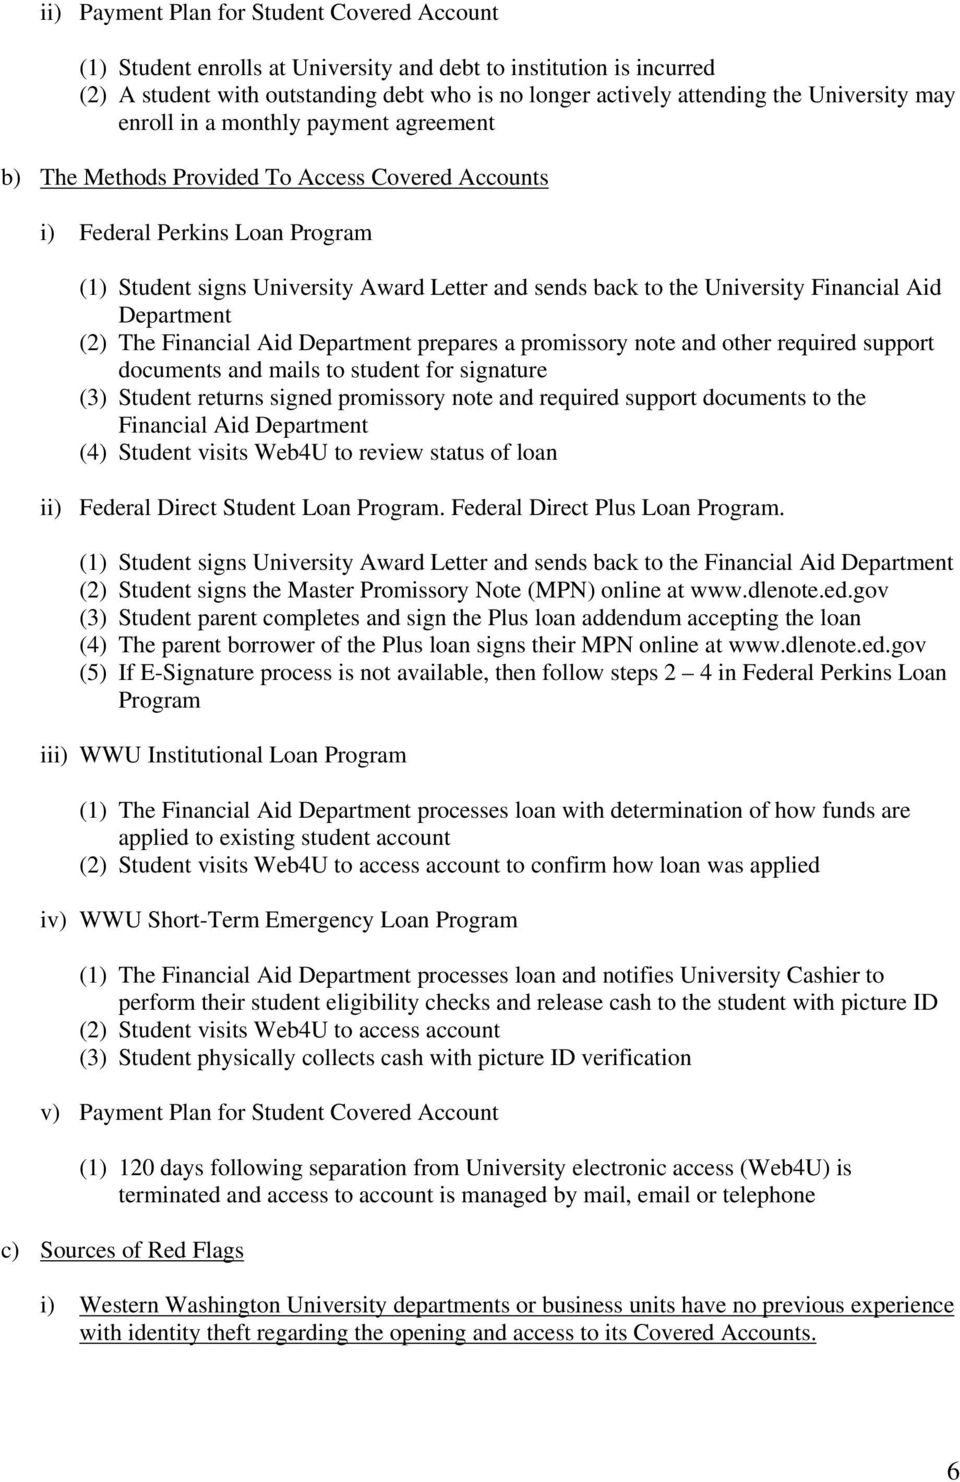 University Financial Aid Department (2) The Financial Aid Department prepares a promissory note and other required support documents and mails to student for signature (3) Student returns signed